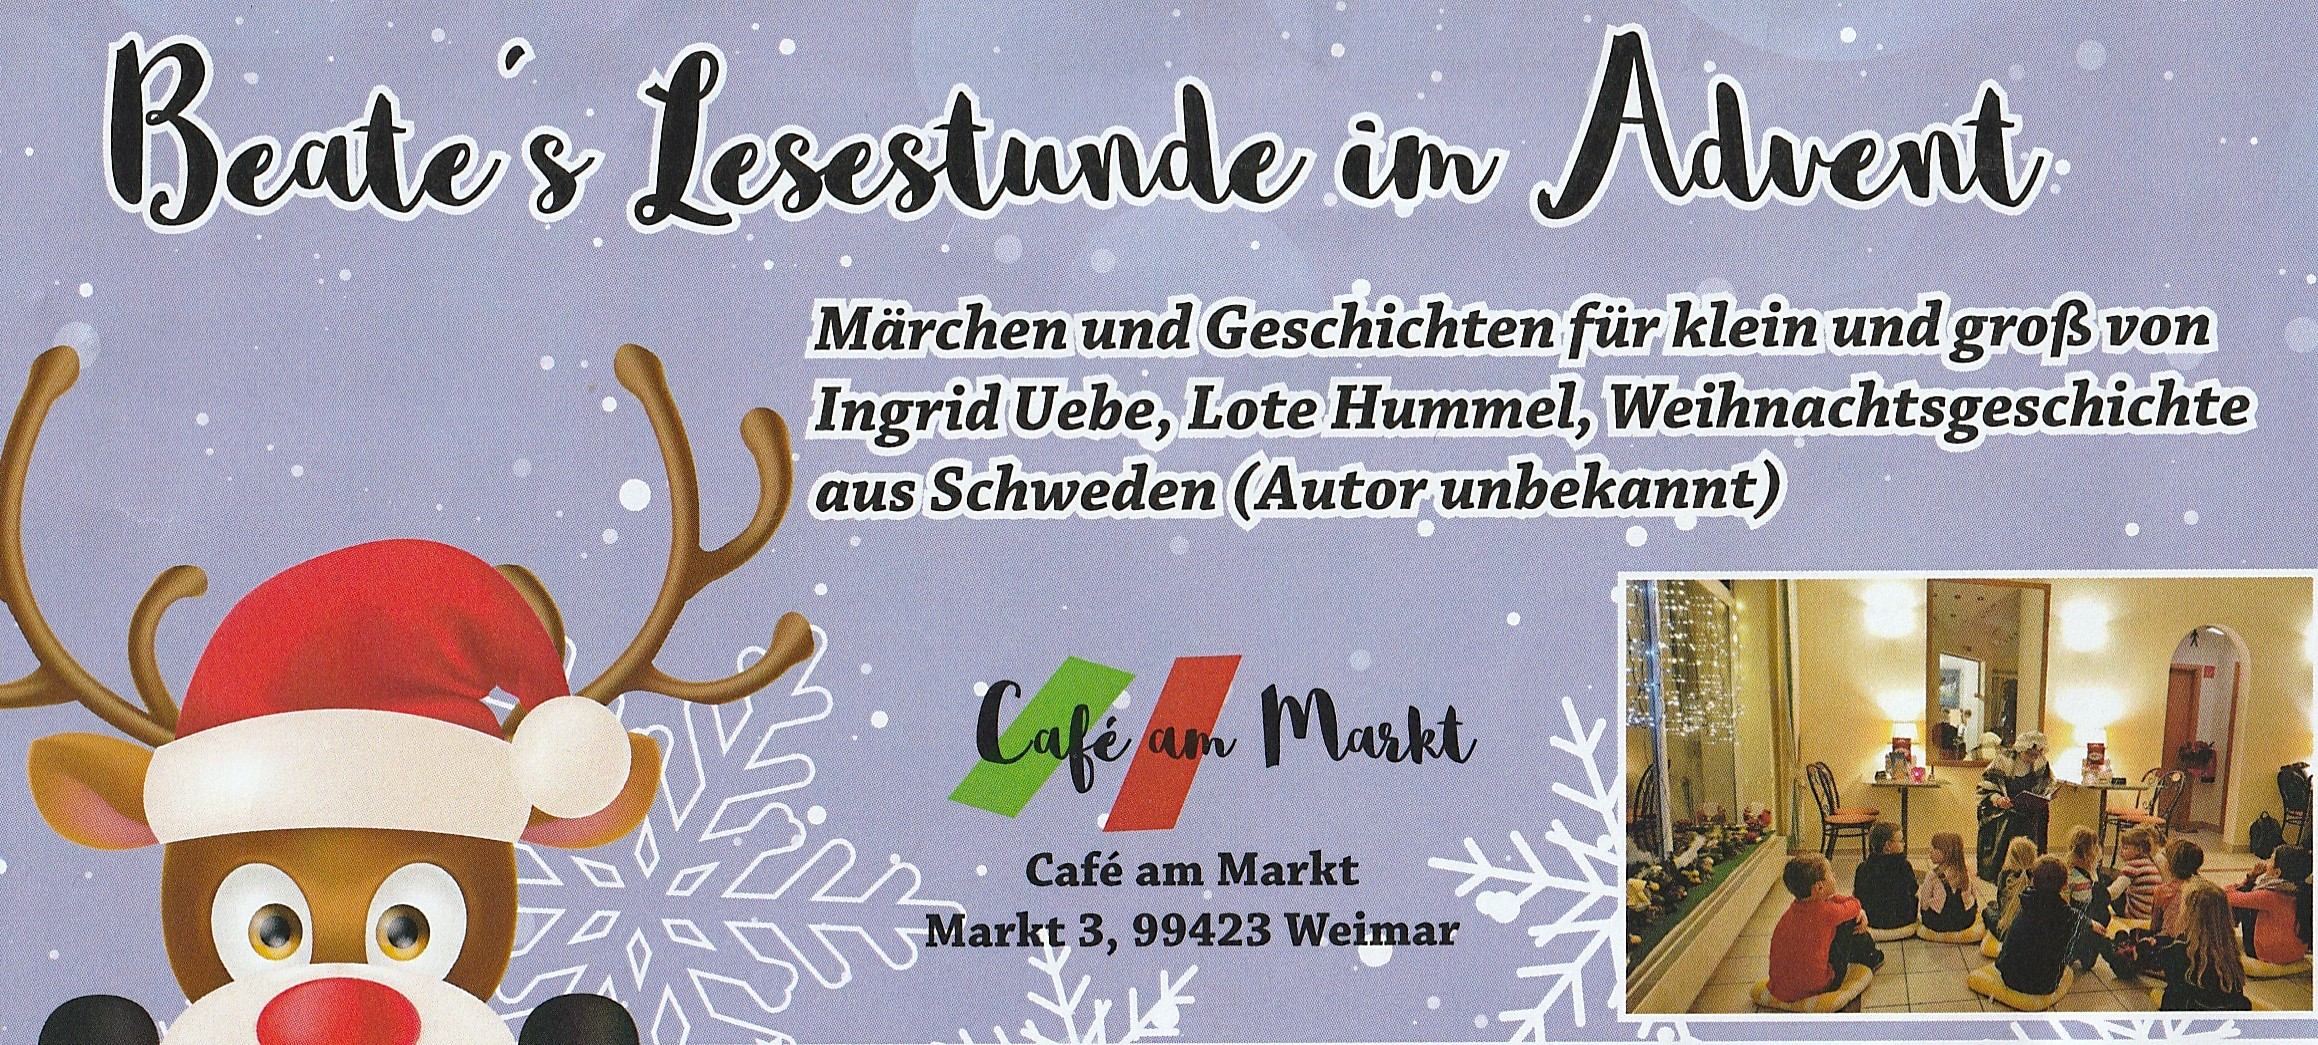 Beate´s Lesestunde im Advent 2019